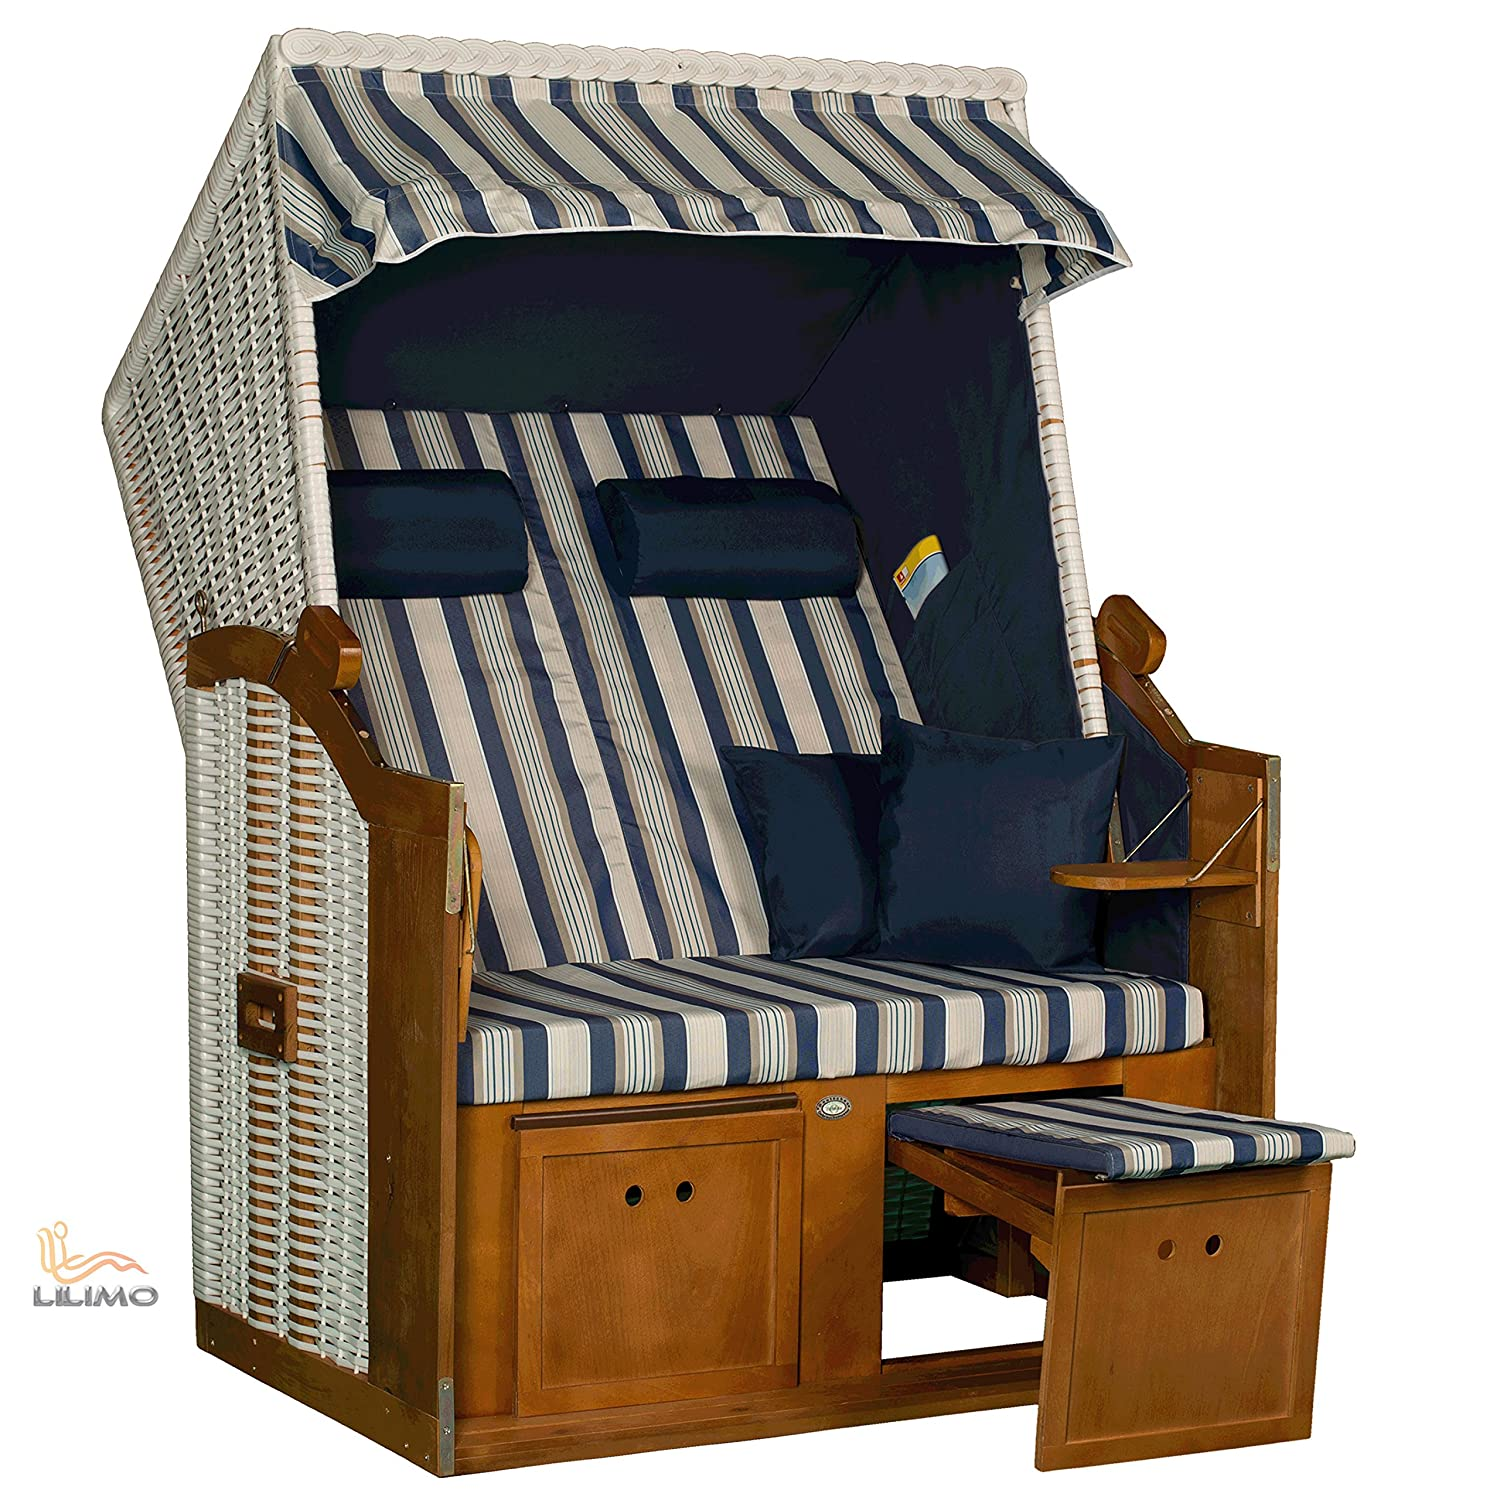 strandkorb ostsee blau geflecht wei variante d fertig montiert lilimo g nstig online kaufen. Black Bedroom Furniture Sets. Home Design Ideas